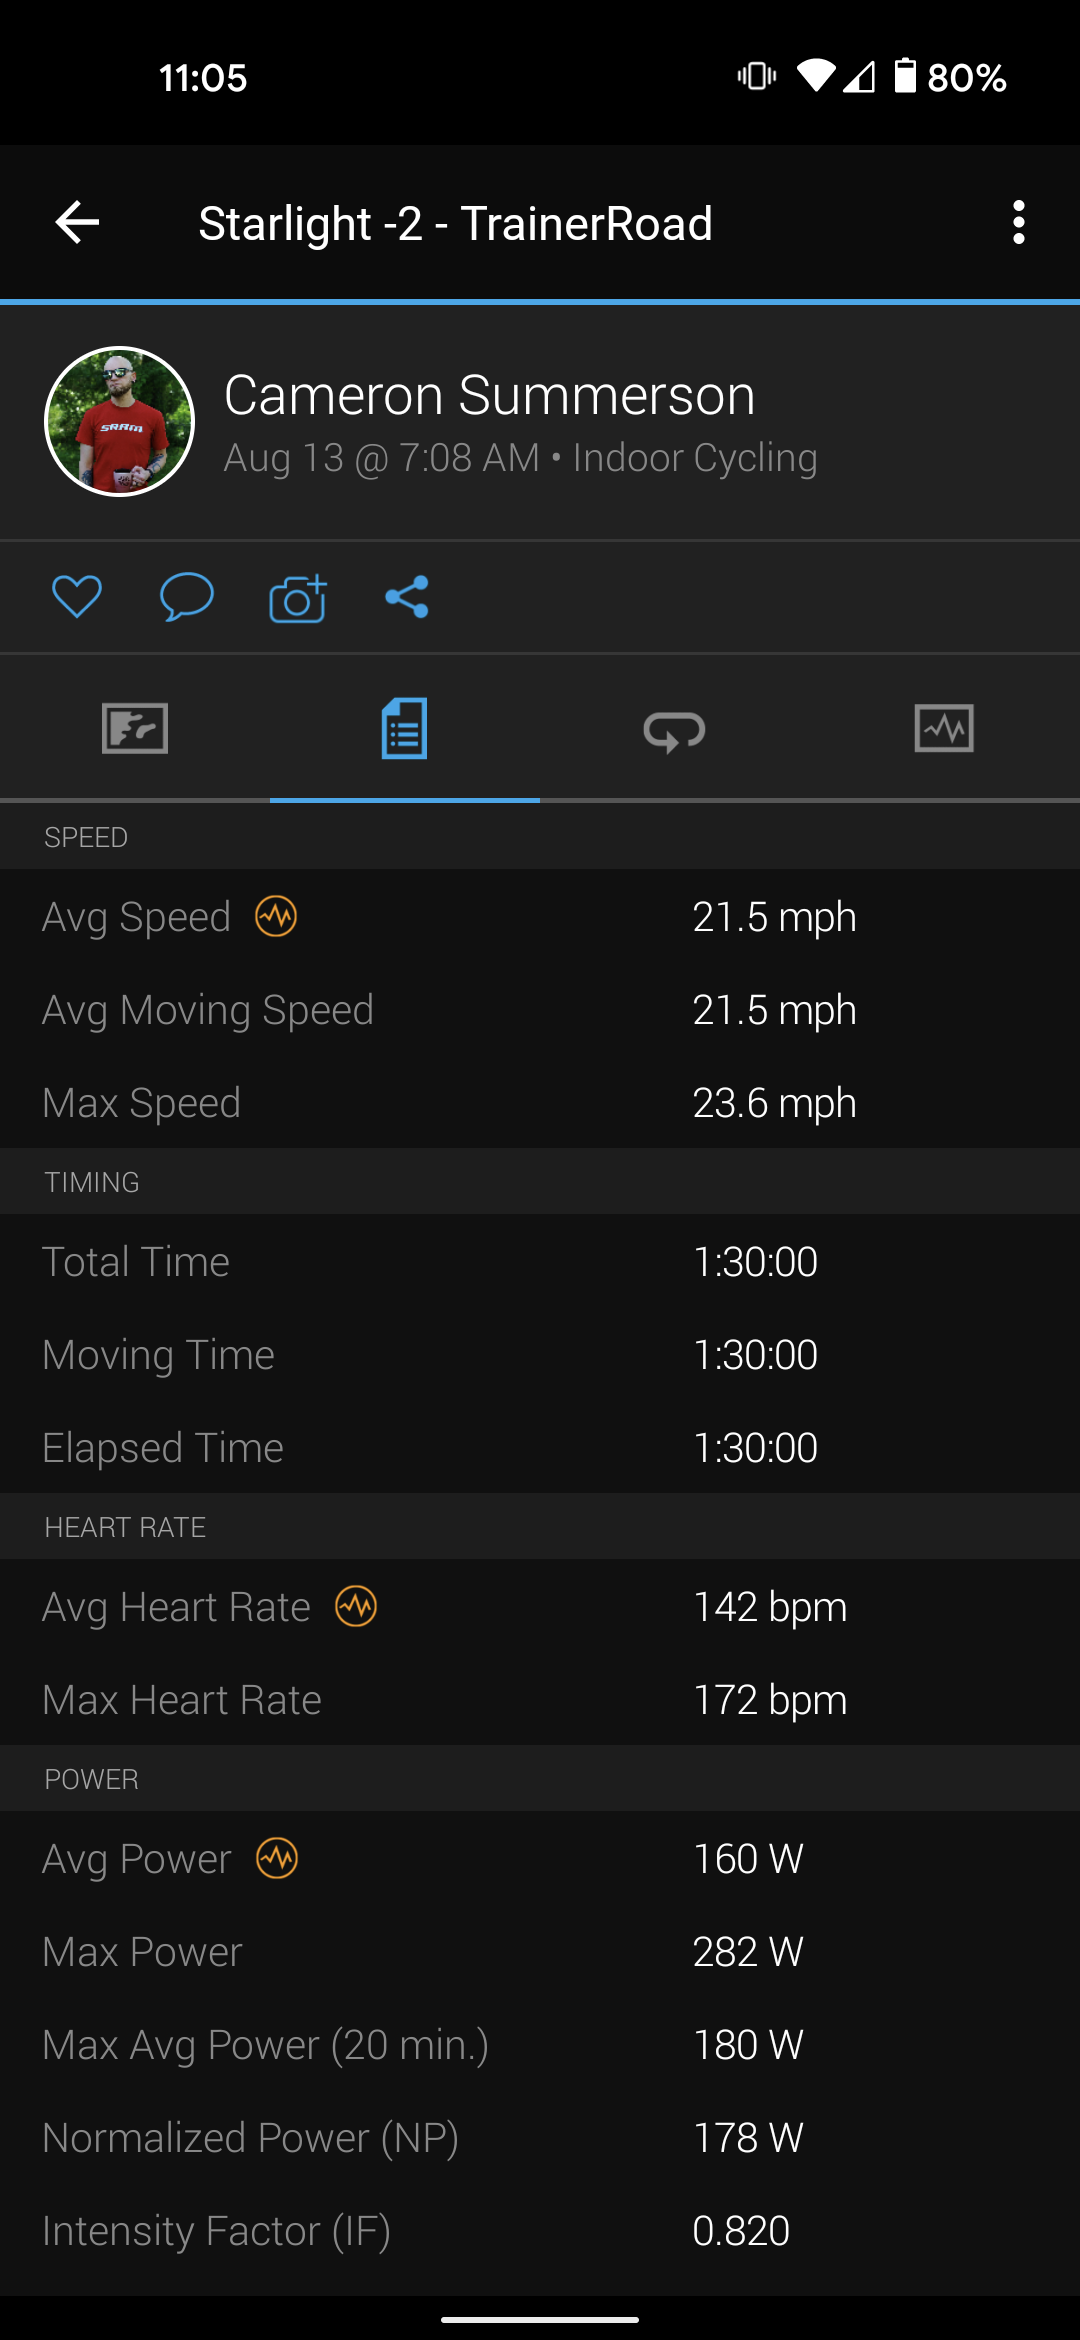 Garmin Connect showing heart rate data from a cycling event